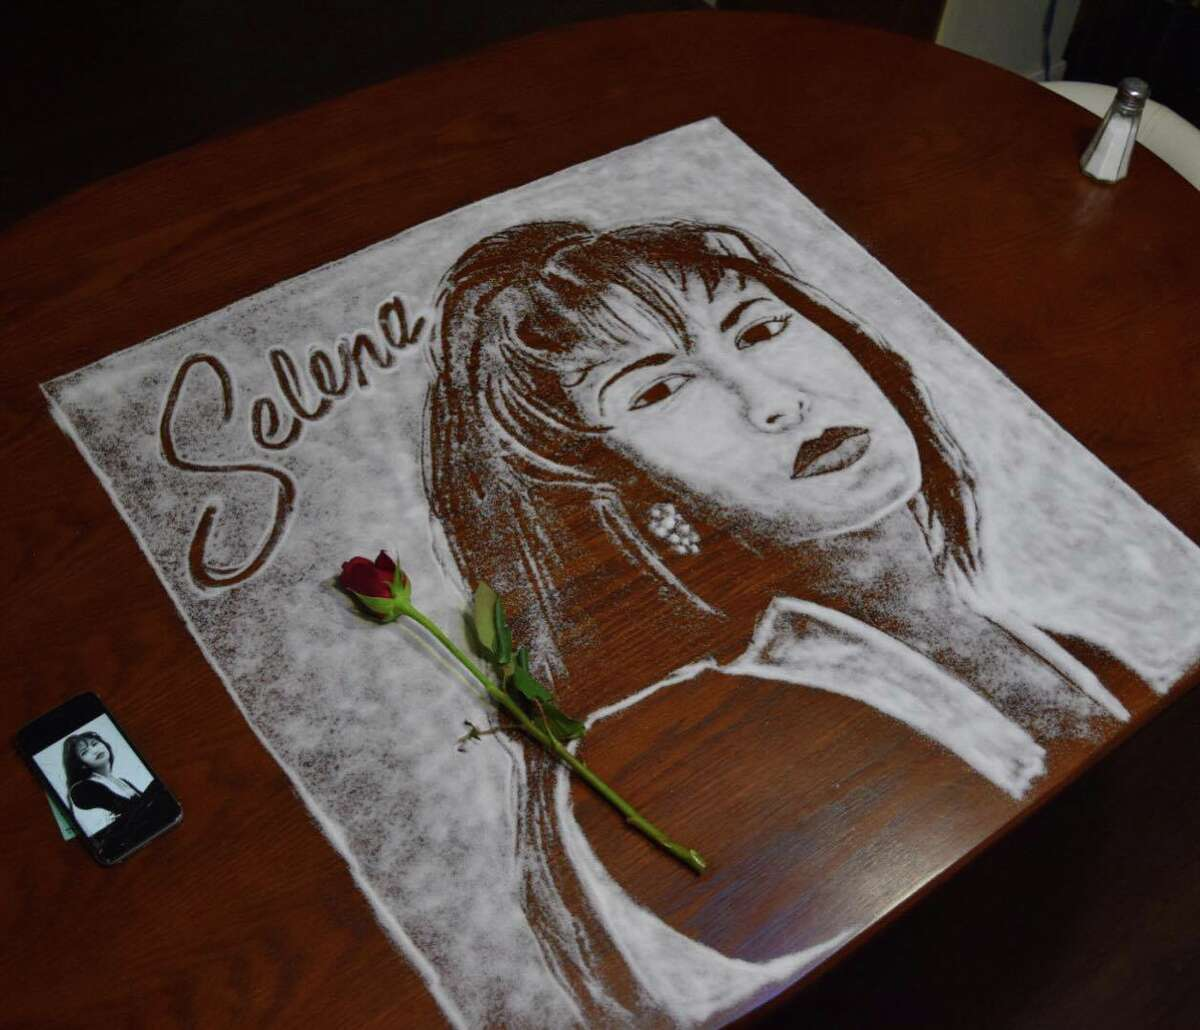 """A portrait of Selena Quintanilla Perez made of art by Rob """"The Original Ferrel"""" at the request of her brother, A.B. Quintanilla, on April 4."""